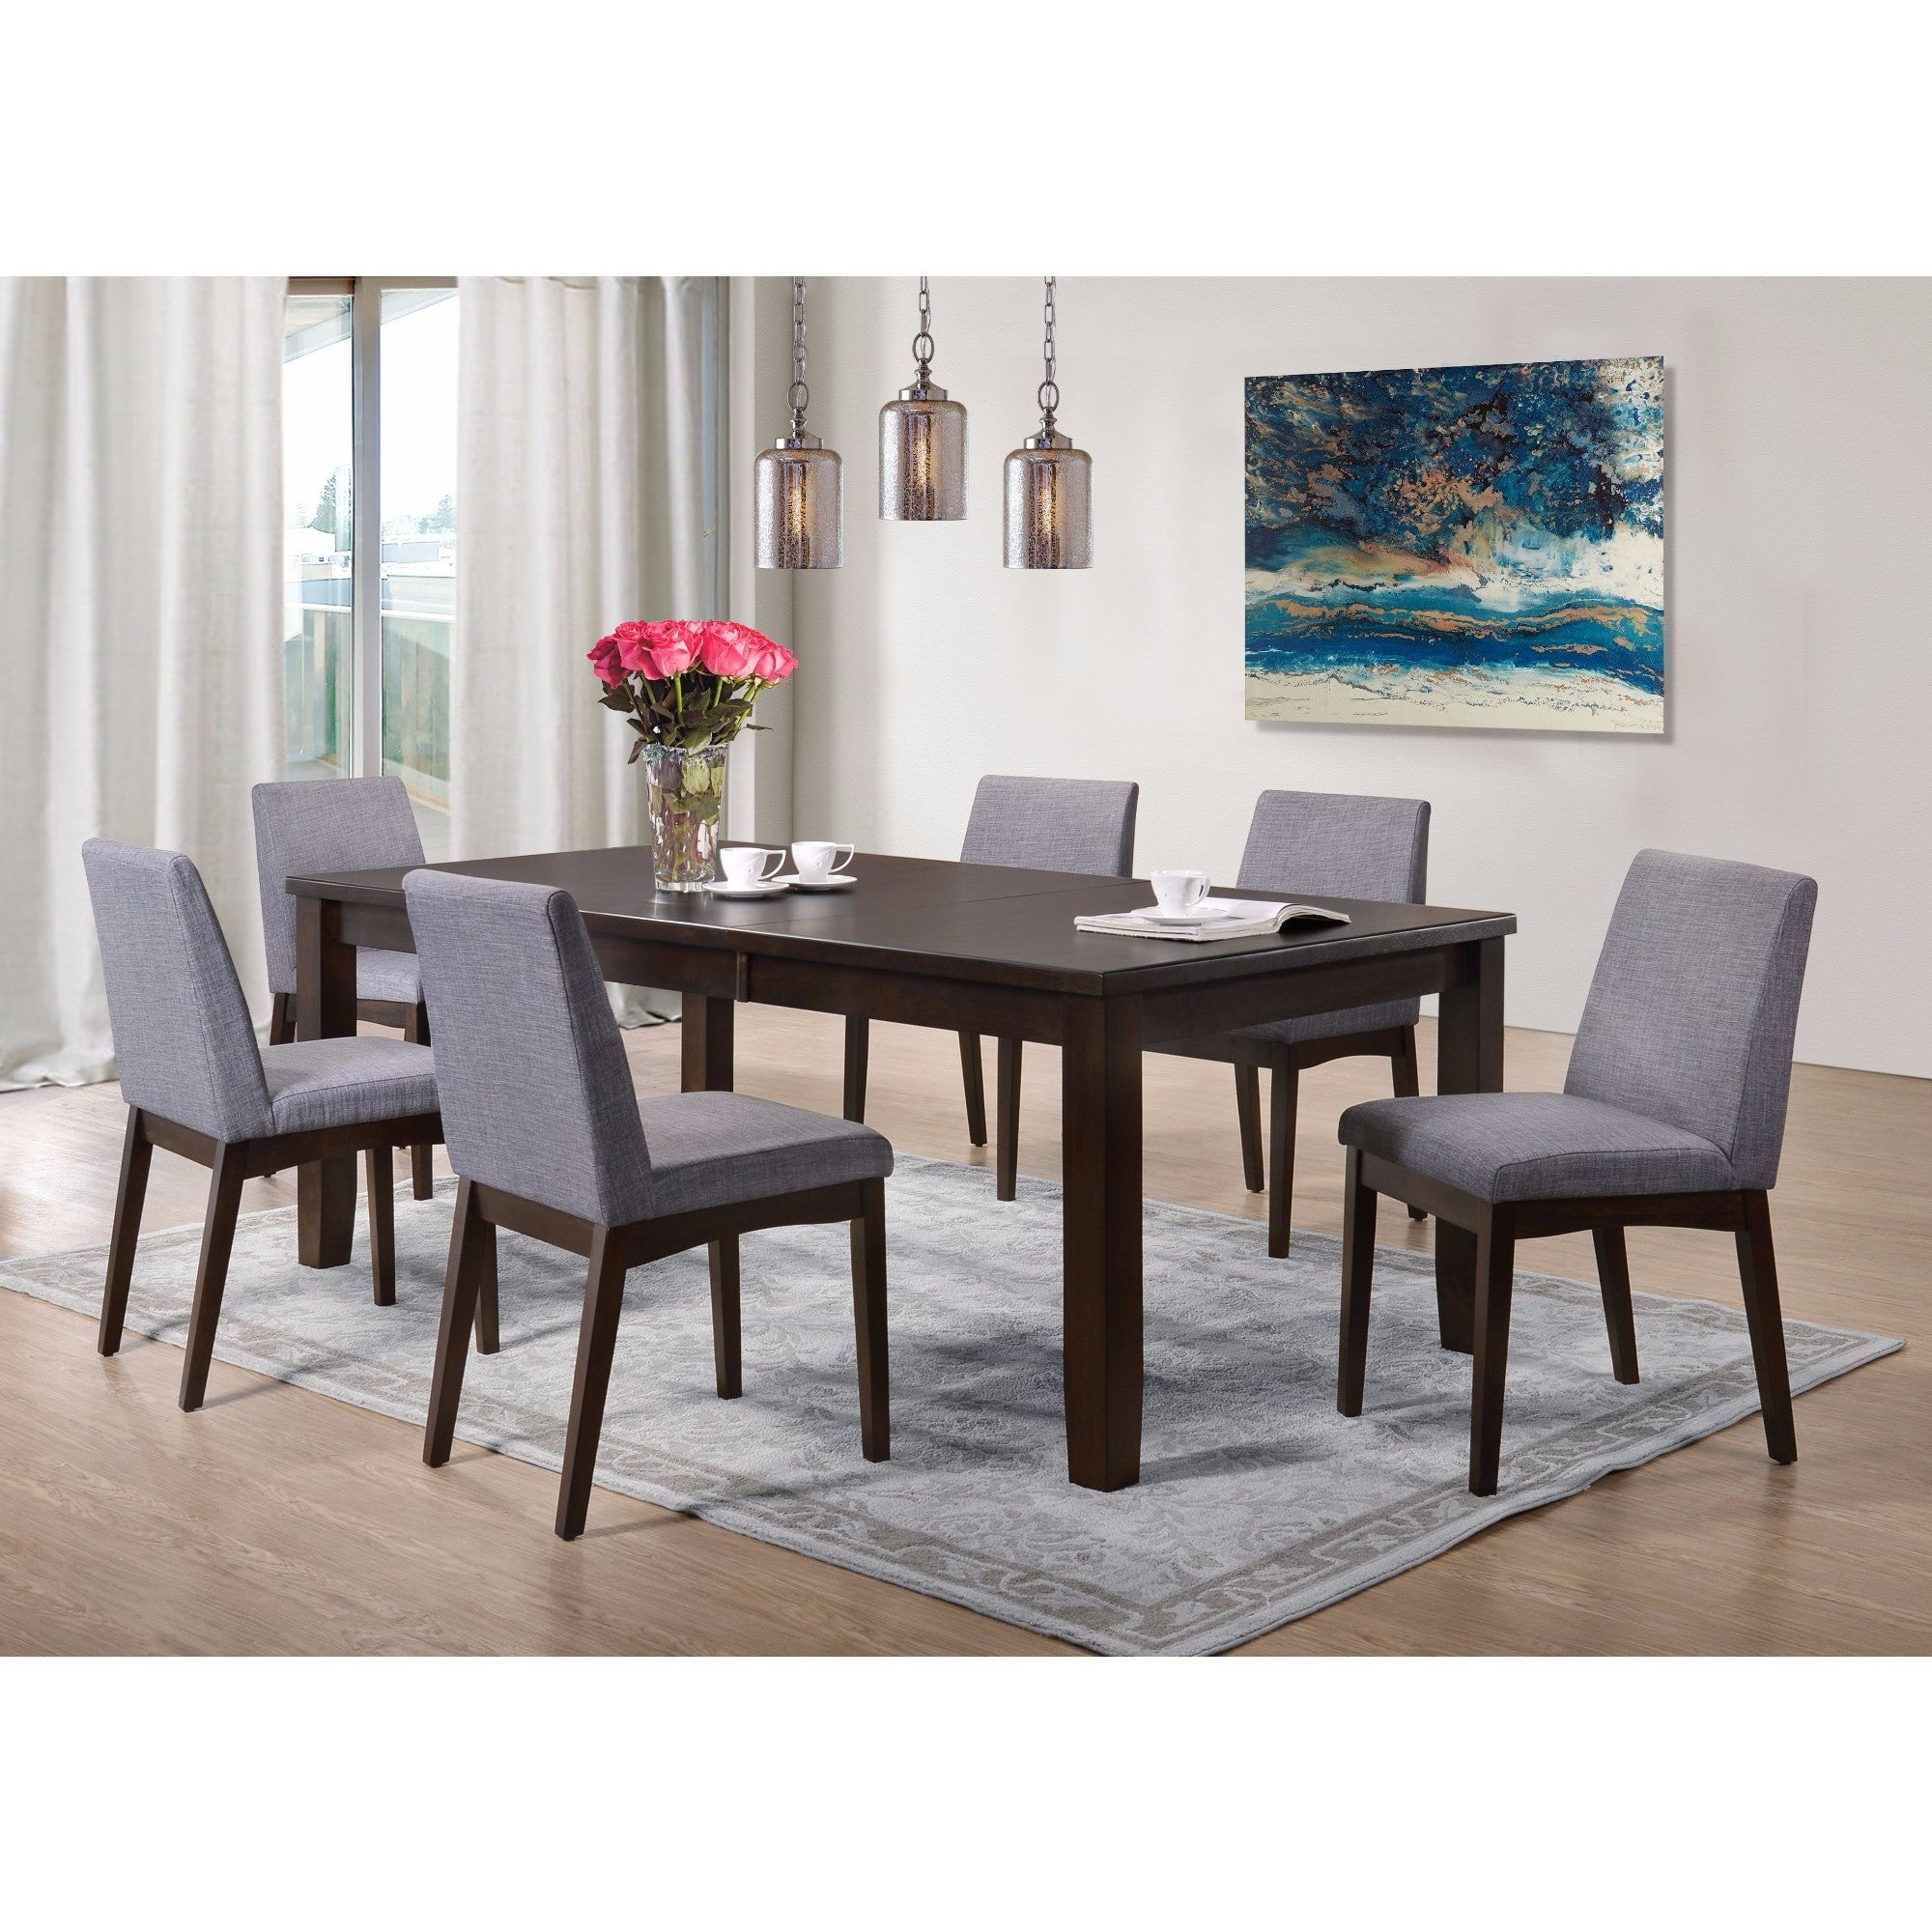 Picket House Furnishings Pyke 7Pc Dining Set Table & 6 Dining Chairs Pertaining To Most Popular Ingred Extending Dining Tables (View 16 of 25)